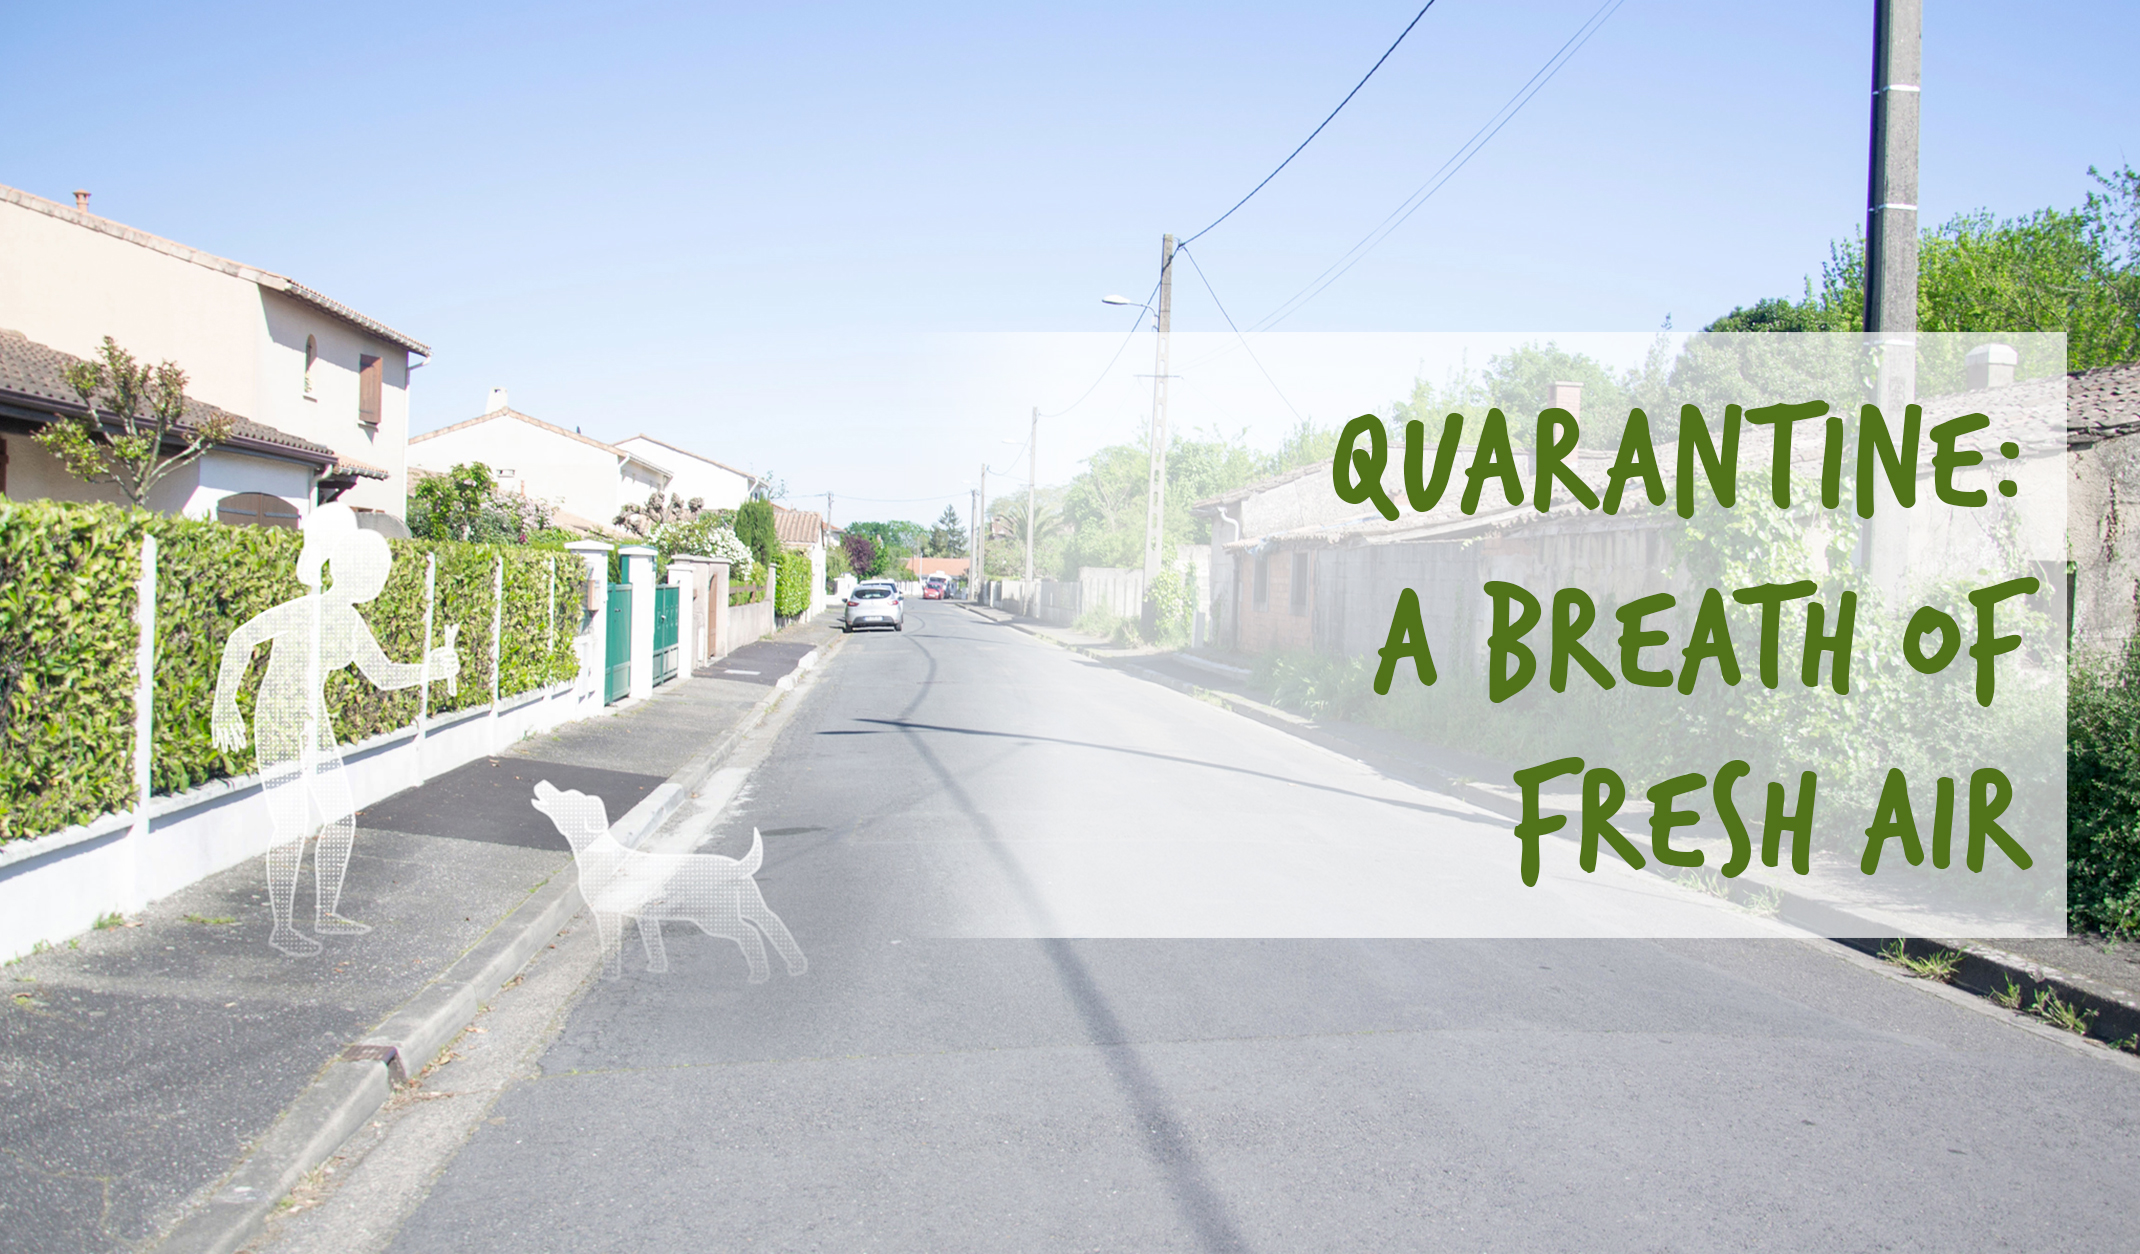 quarantine: a breath of fresh air